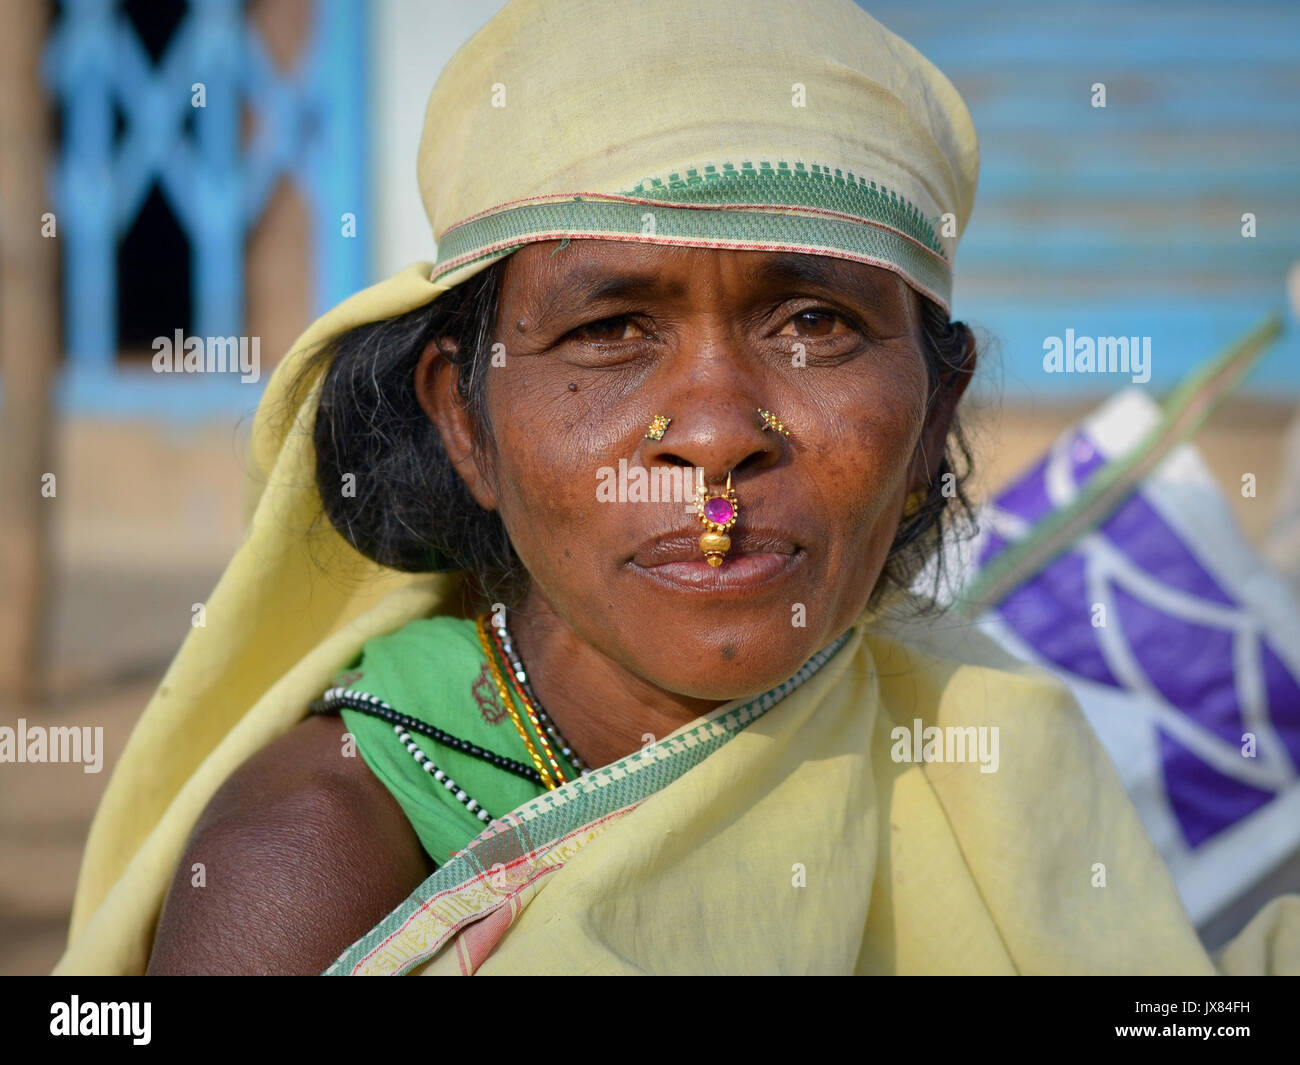 Closeup street portrait (outdoor headshot, full-face view) of a mature Indian Adivasi market woman with two nose - Stock Image